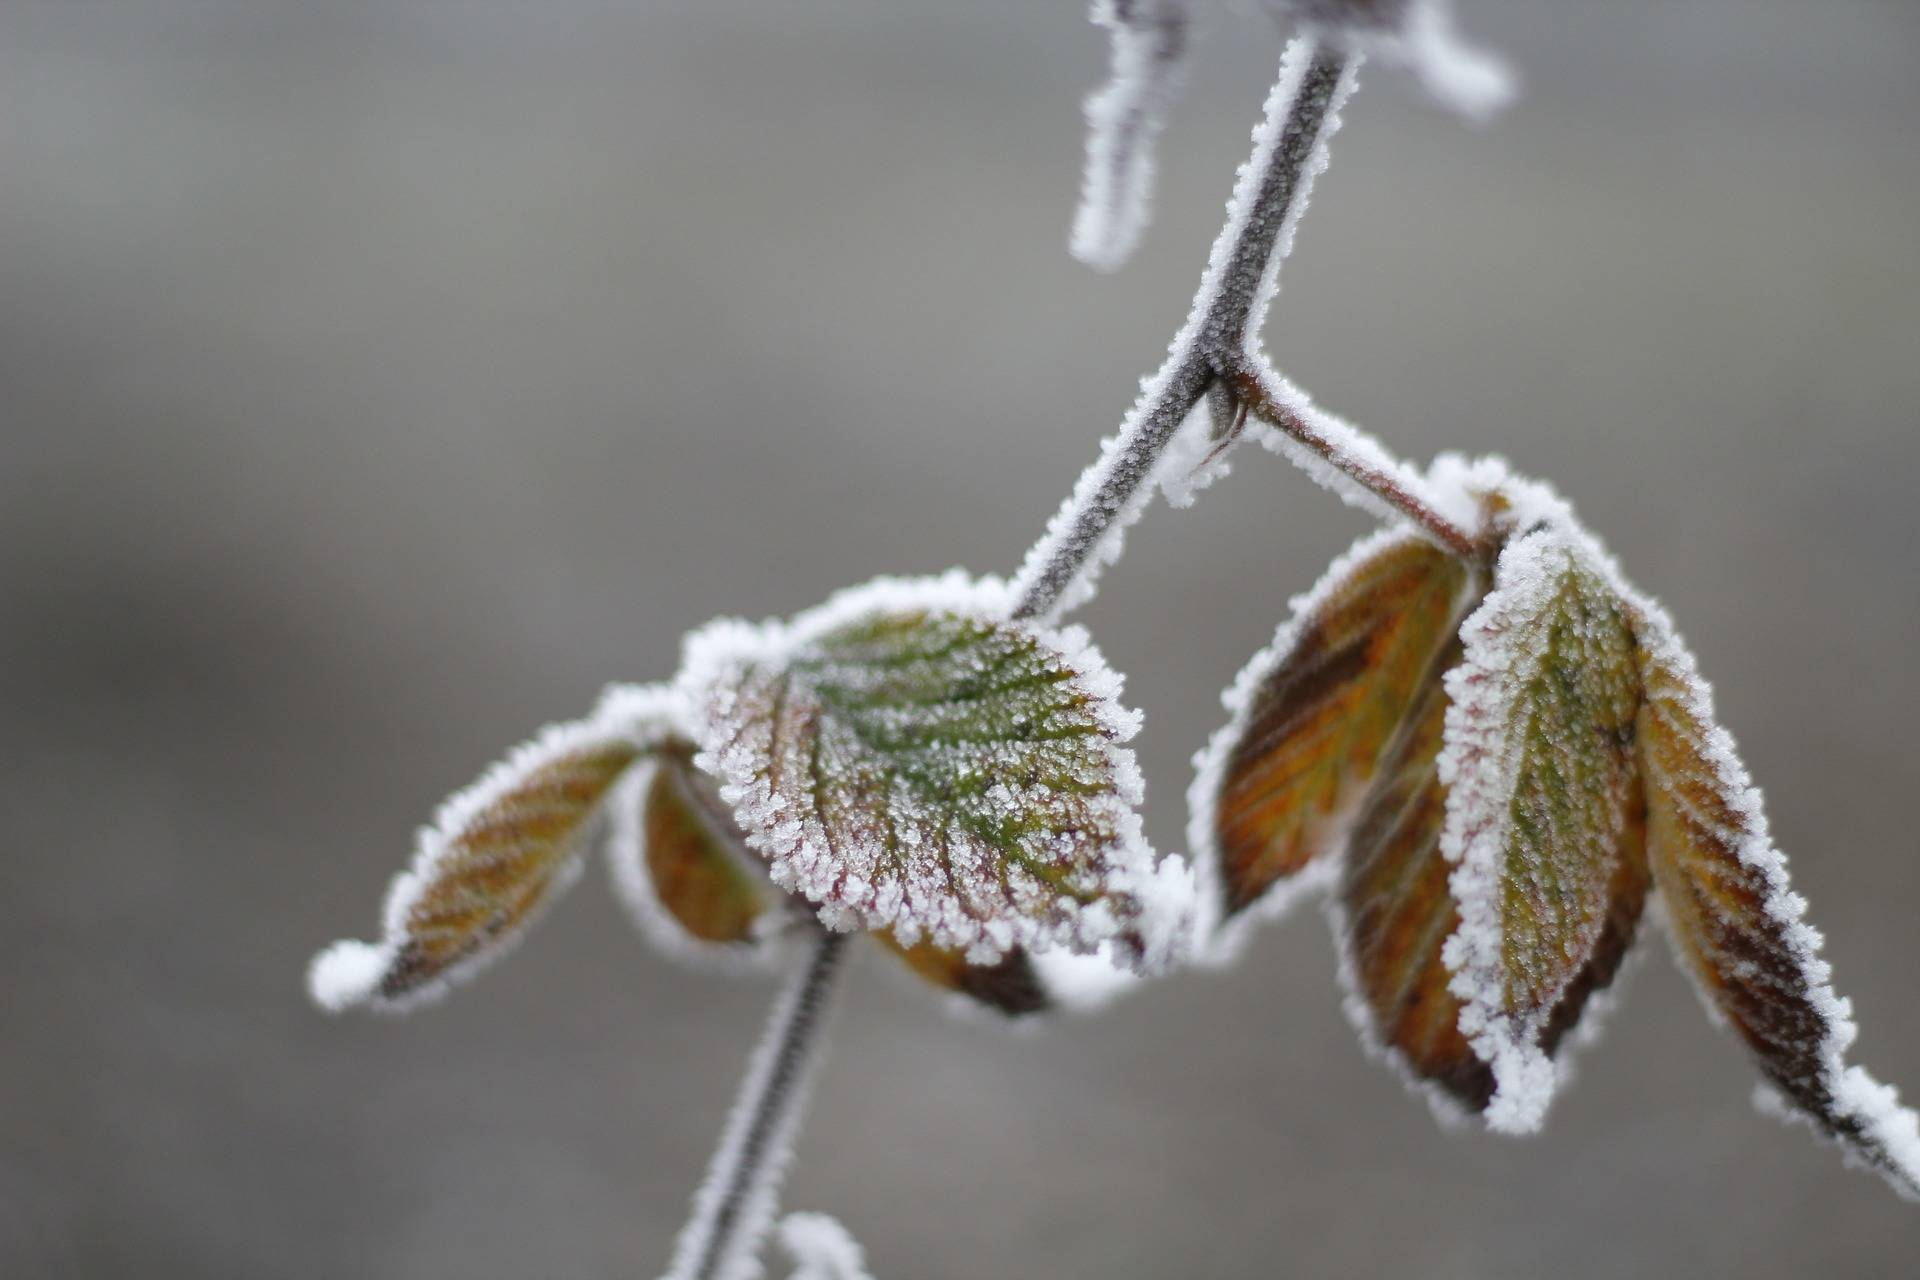 SCIENCE MATTERS: Winter weather doesn't disprove global